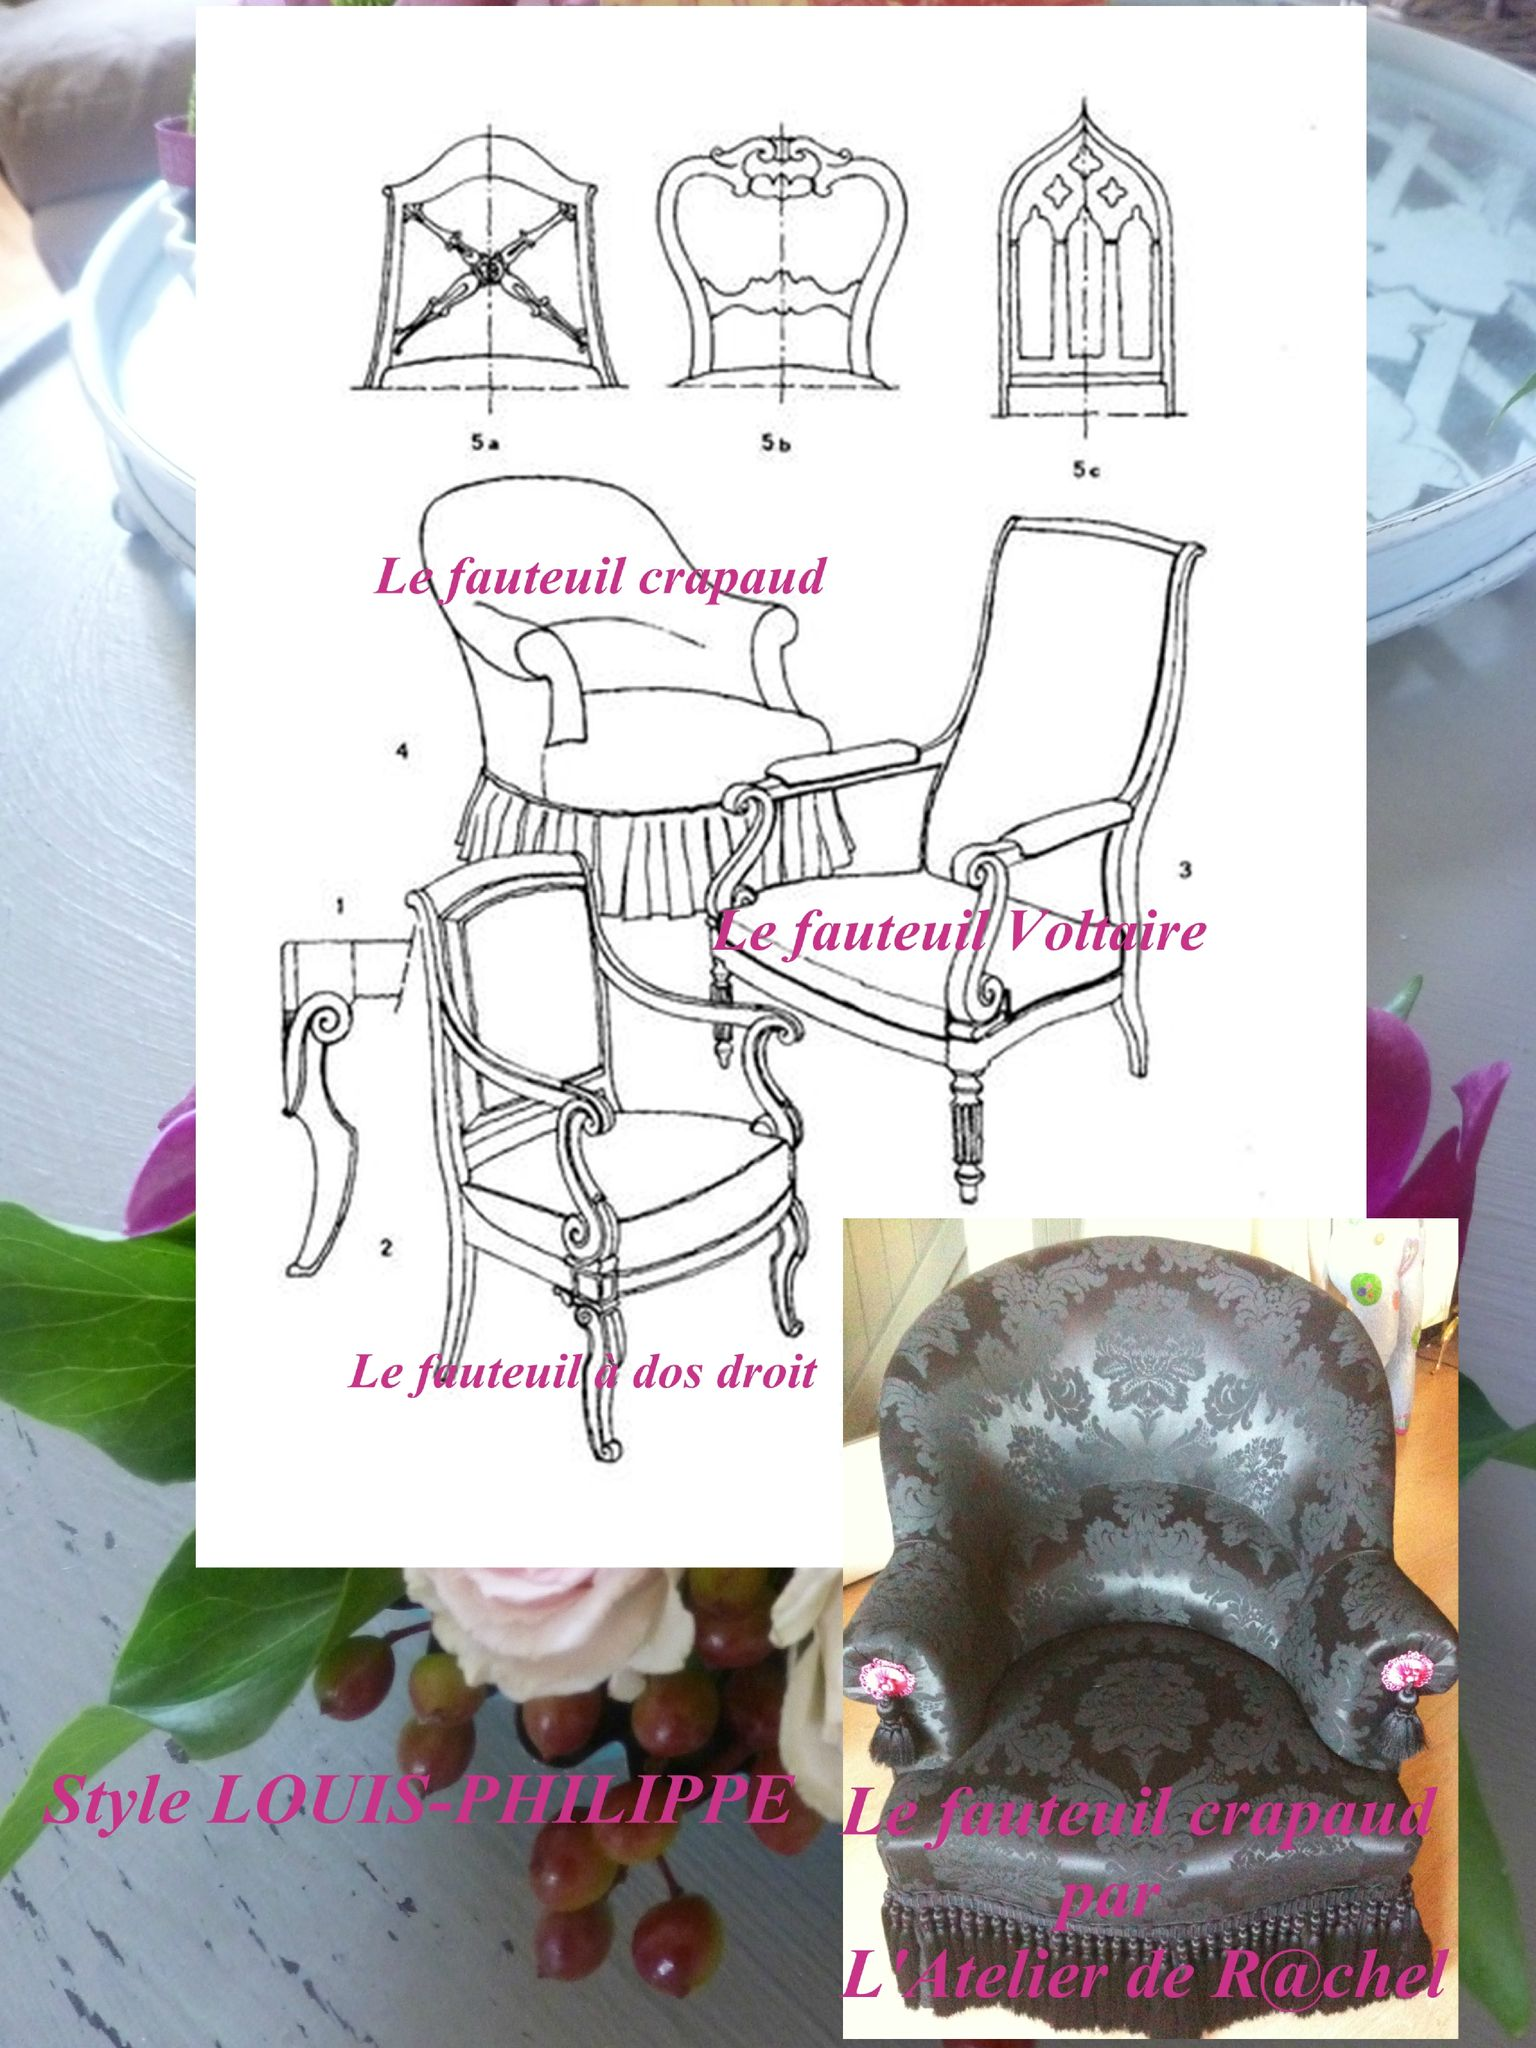 chaise longue anglaise with 26676546 on C3 A9tonn C3 A9 Femme Joli 2332550 also La Siesta Chaise Hamac Lounger Currambera Kiwi together with 440 Canape Scandinave Vintage 1789 Spoke Back 3700895403333 also Gabrielle Lord Conspiration 365 further Tissu Blanc Pas Cher.